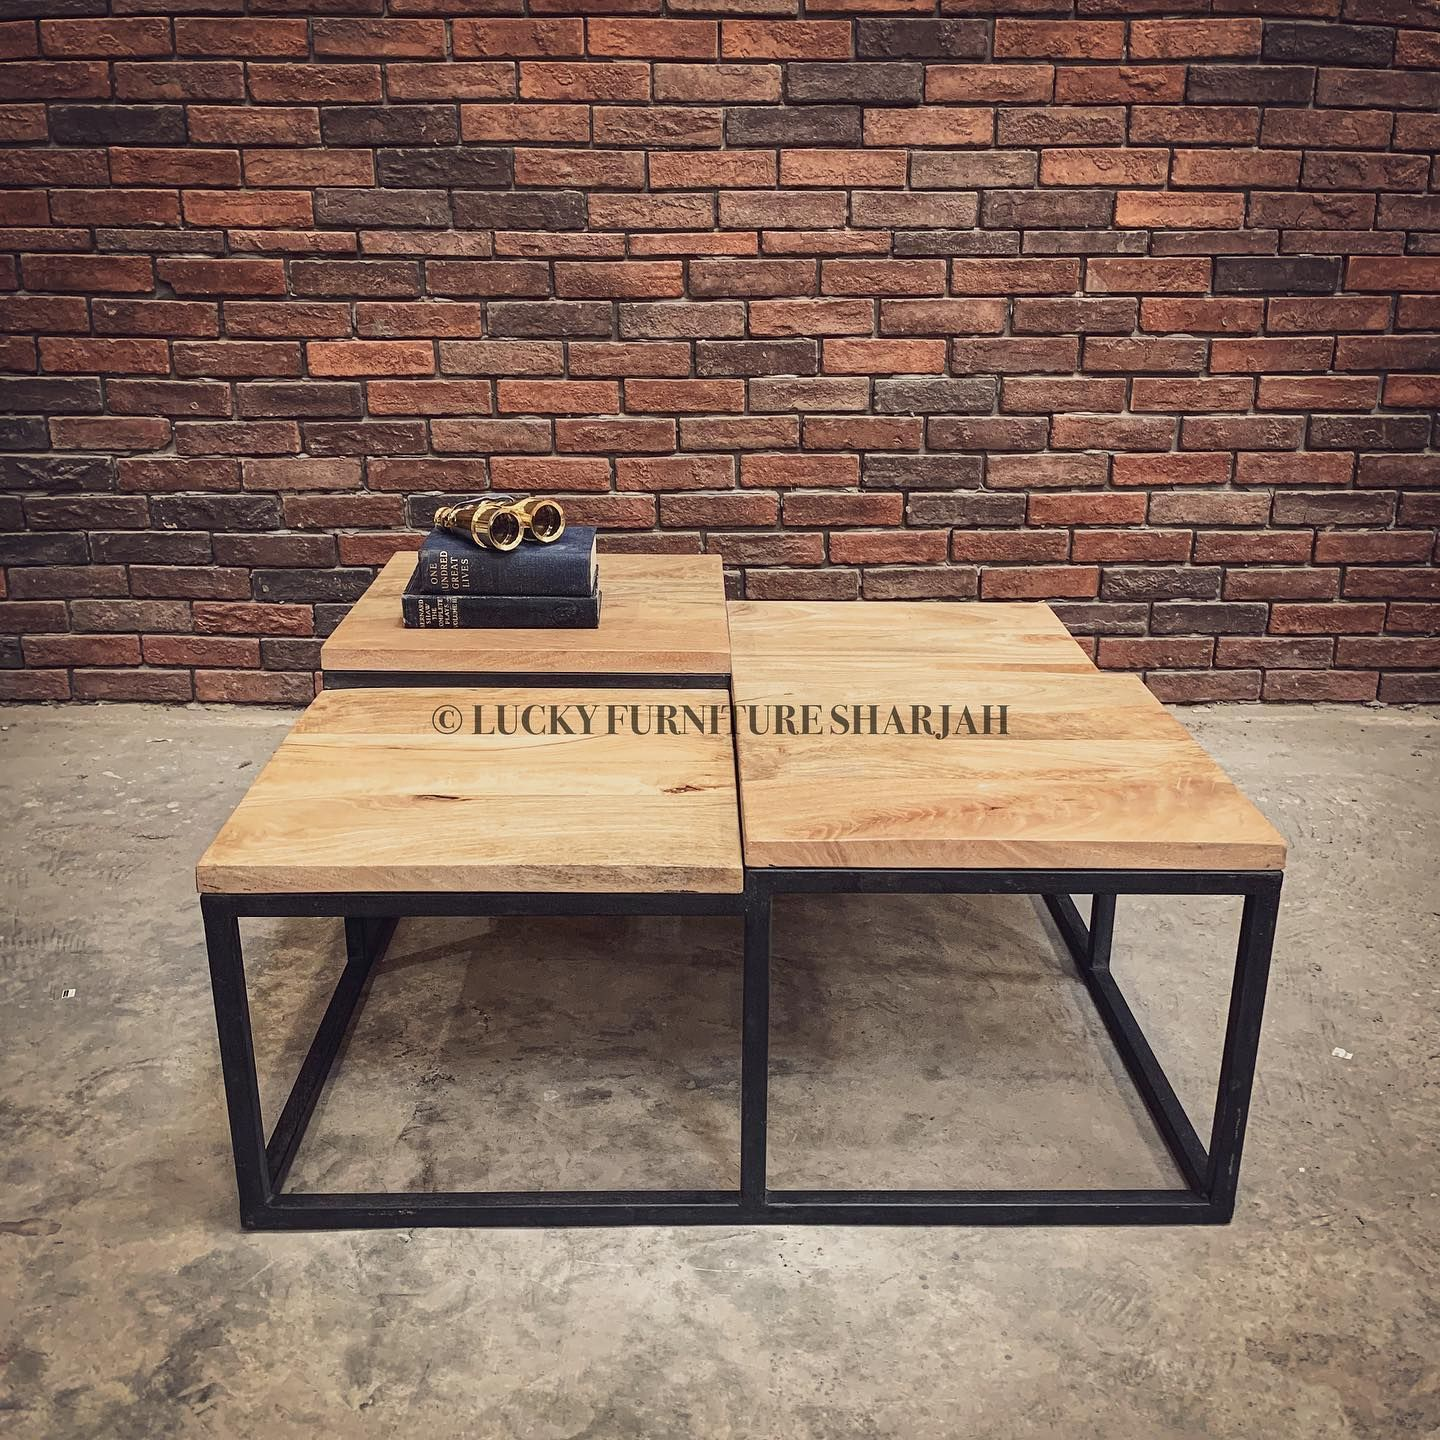 Hi Low Coffee Table Industrial Design Coffee Table Now Available For More Information Kindly Dm Industrial Design Coffee Table Coffee Table Low Coffee Table [ 1440 x 1440 Pixel ]